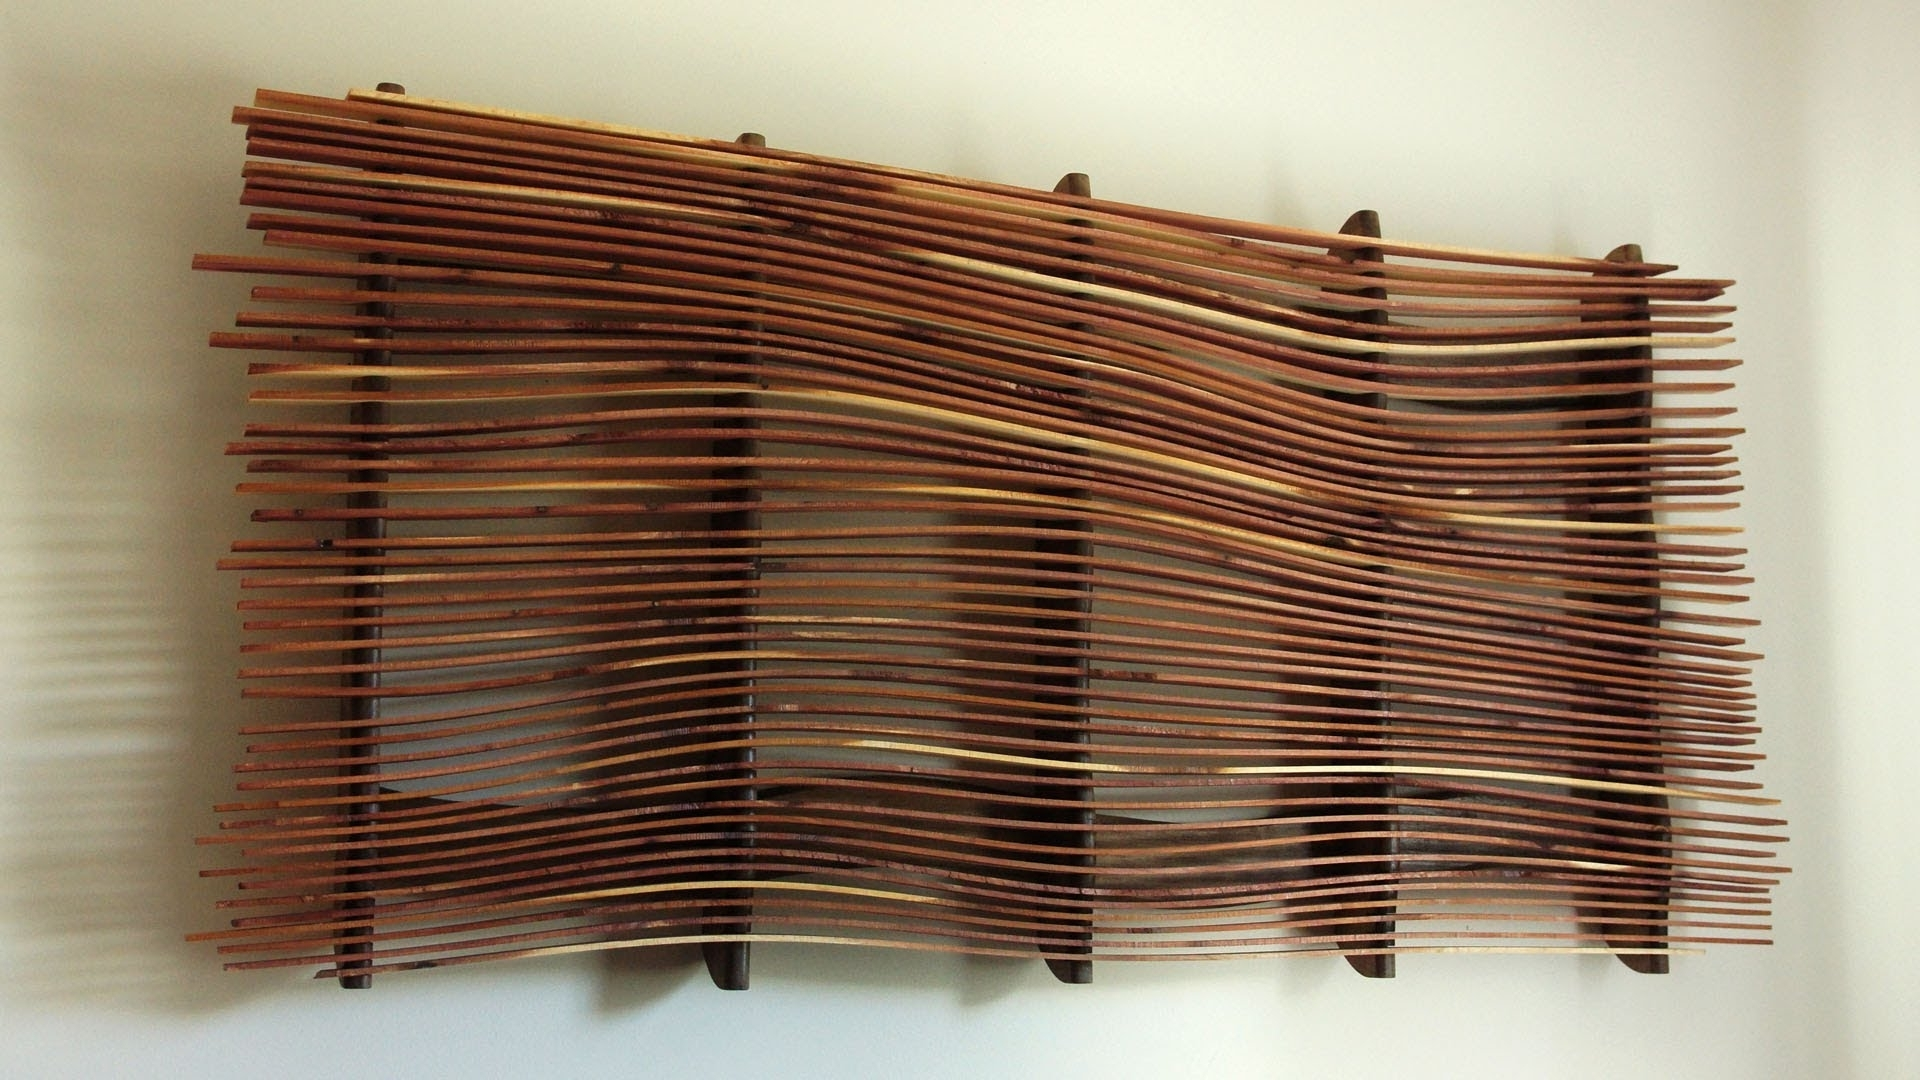 Newest Wall Art From Scrap Wood – Youtube Throughout Wood 3D Wall Art (View 9 of 15)